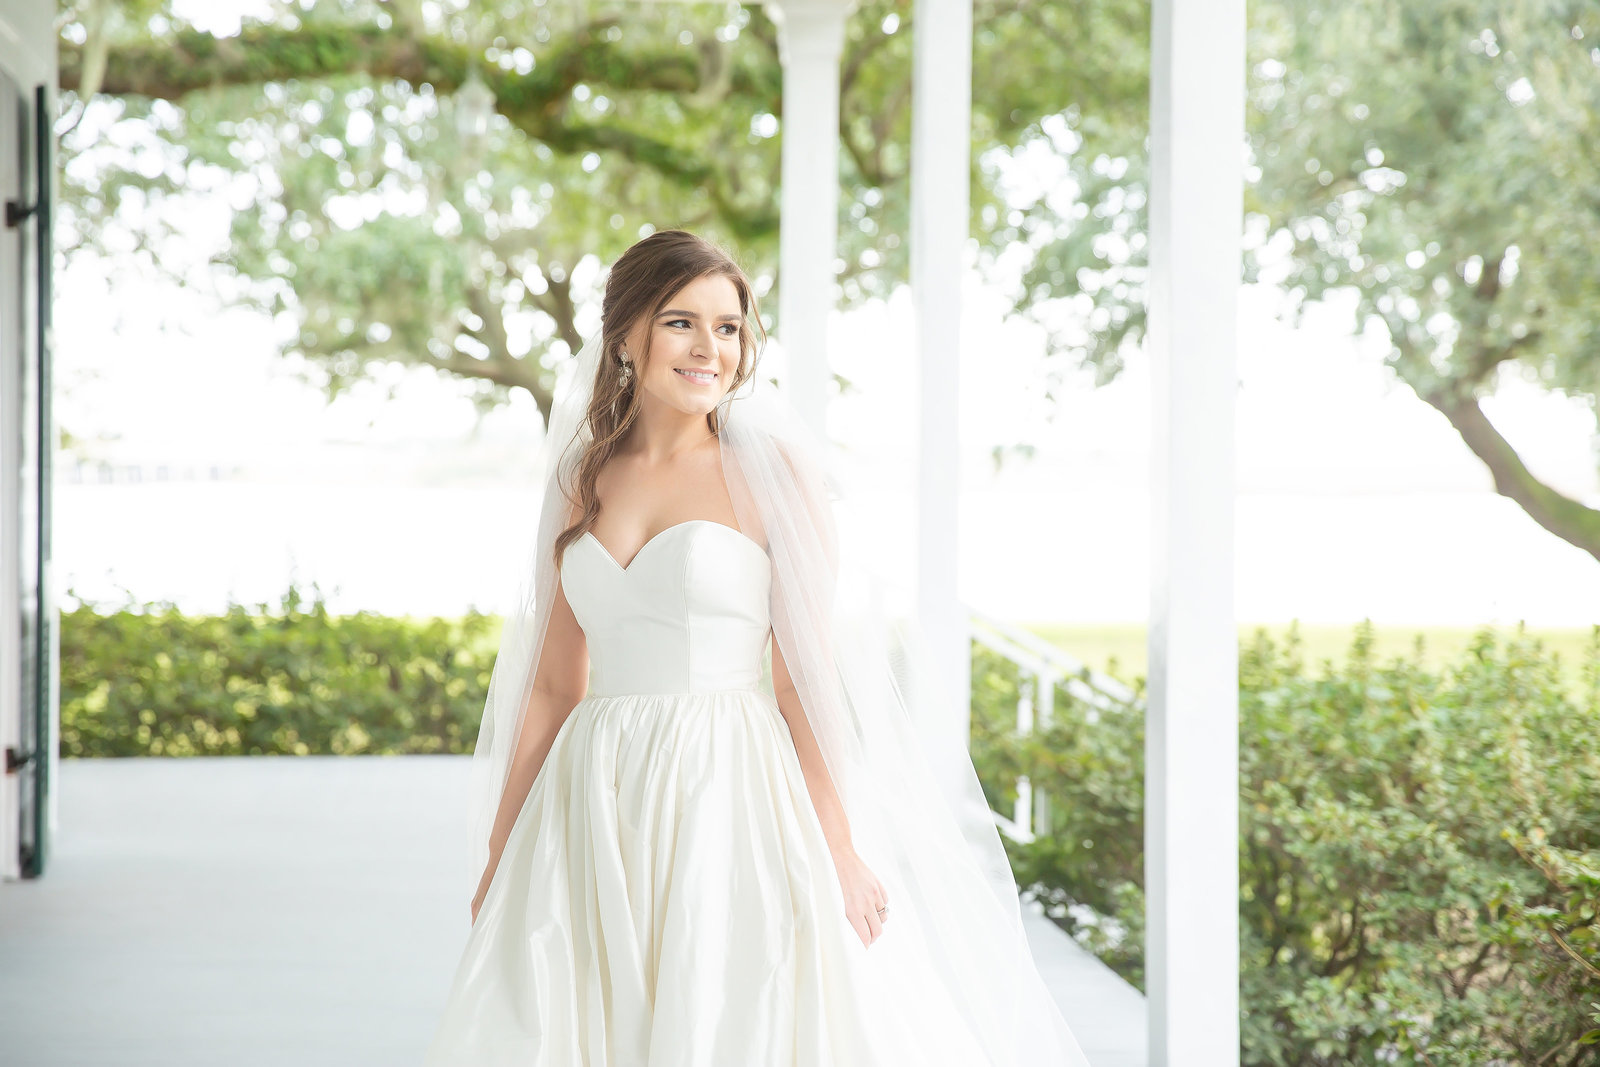 Biloxi Gautier Bridal Portrait Sessions